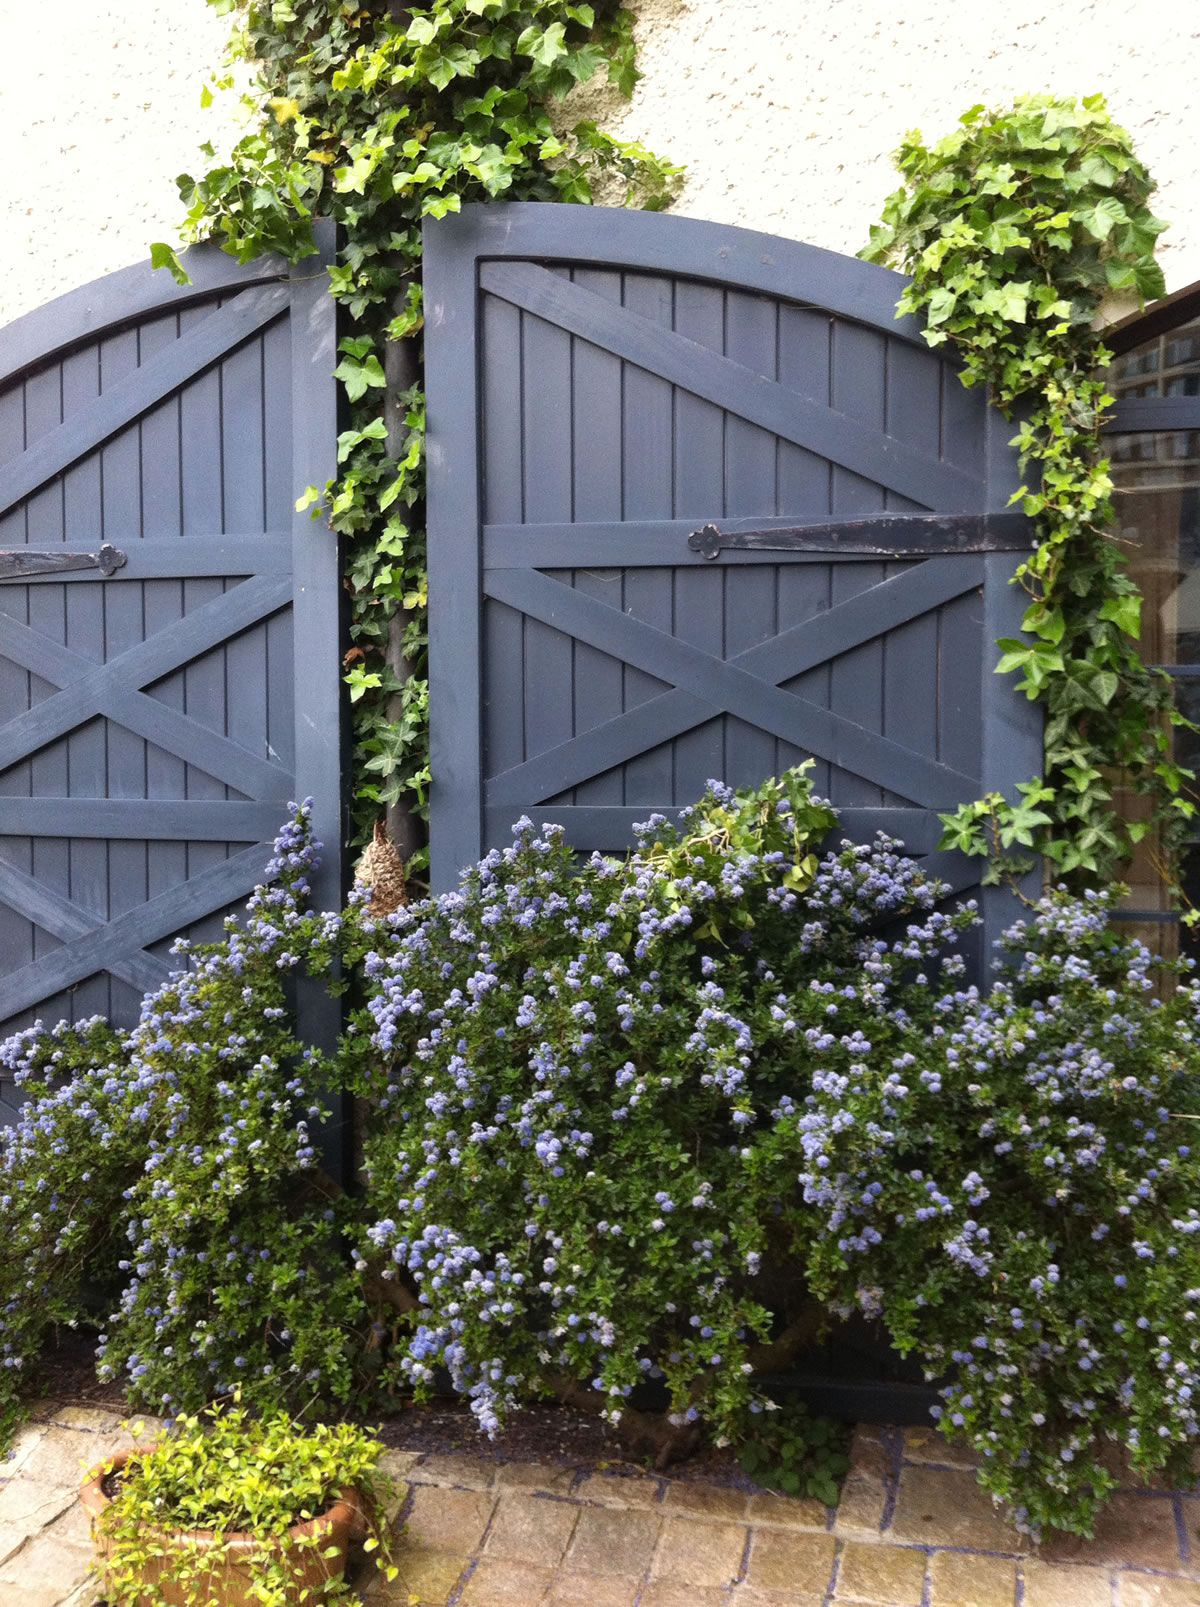 Ideas for painting your garden shed - I Love This Garden With Shades Of Cuprinol Uk S Misty Lake Shed Paint Coloursexterior Paint Colorspainted